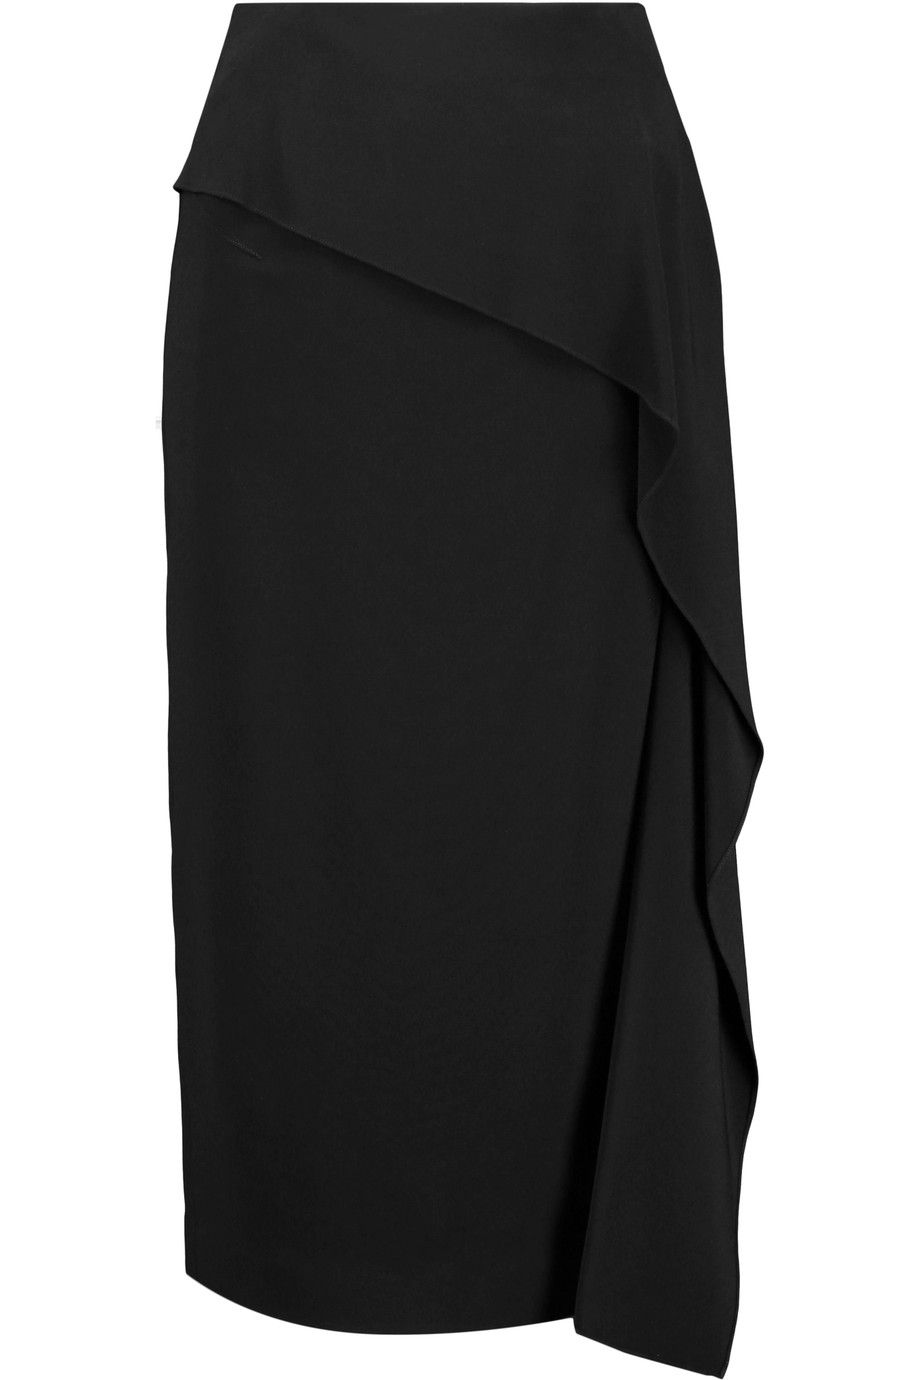 ROLAND MOURET Clarendon ruffle-trimmed stretch-crepe midi skirt. #rolandmouret #cloth #skirt